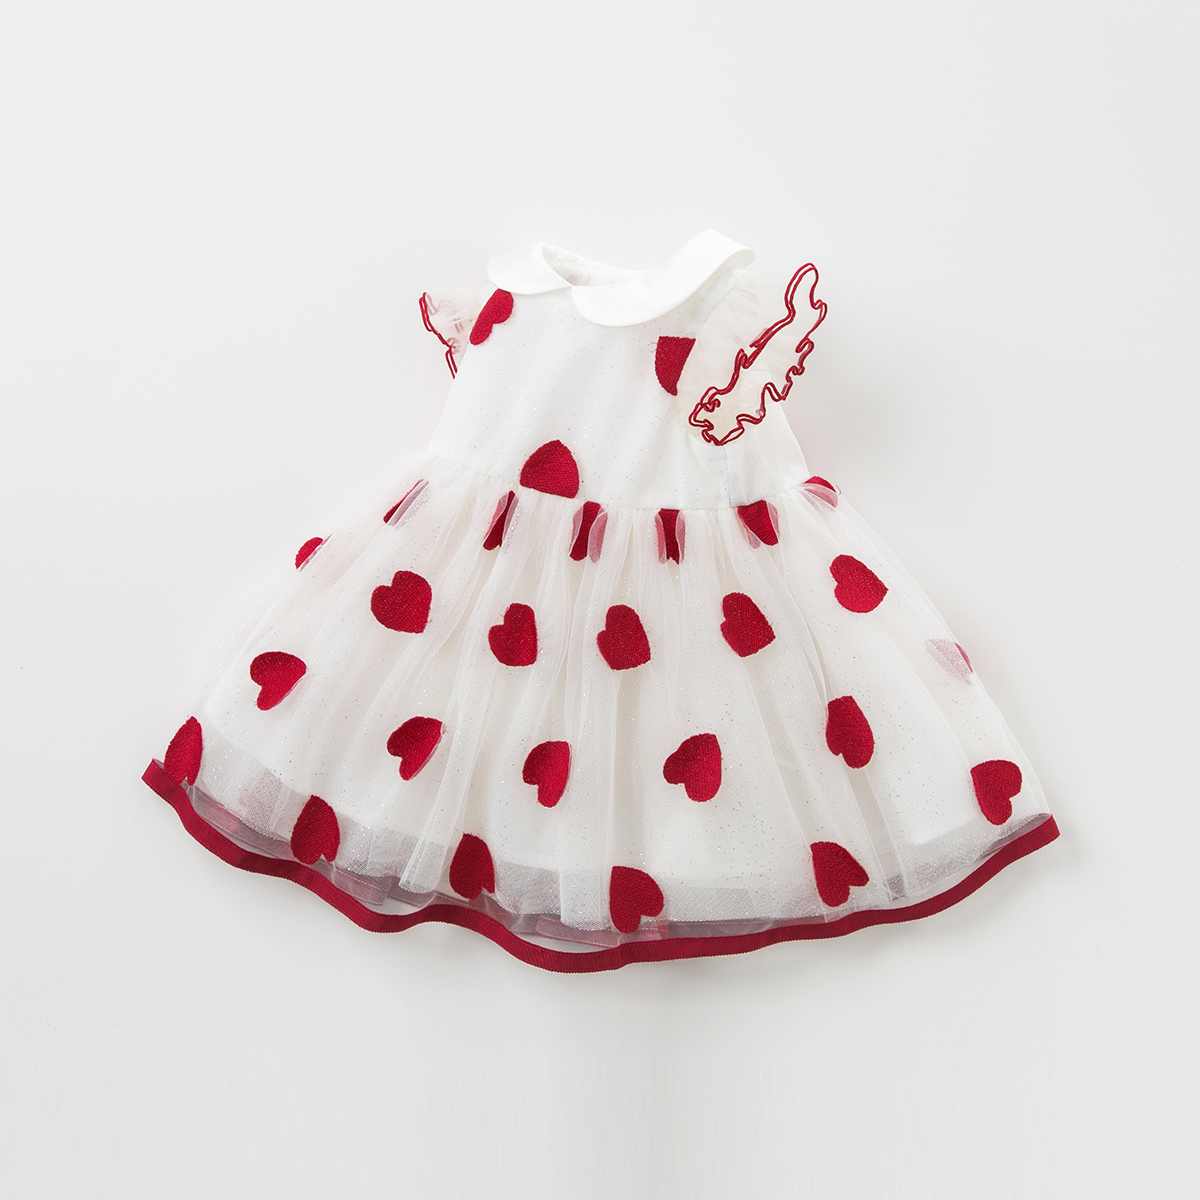 Davi Bella children's clothing girl summer dress small boy baby princess skirt children's skirt girl baby clothes